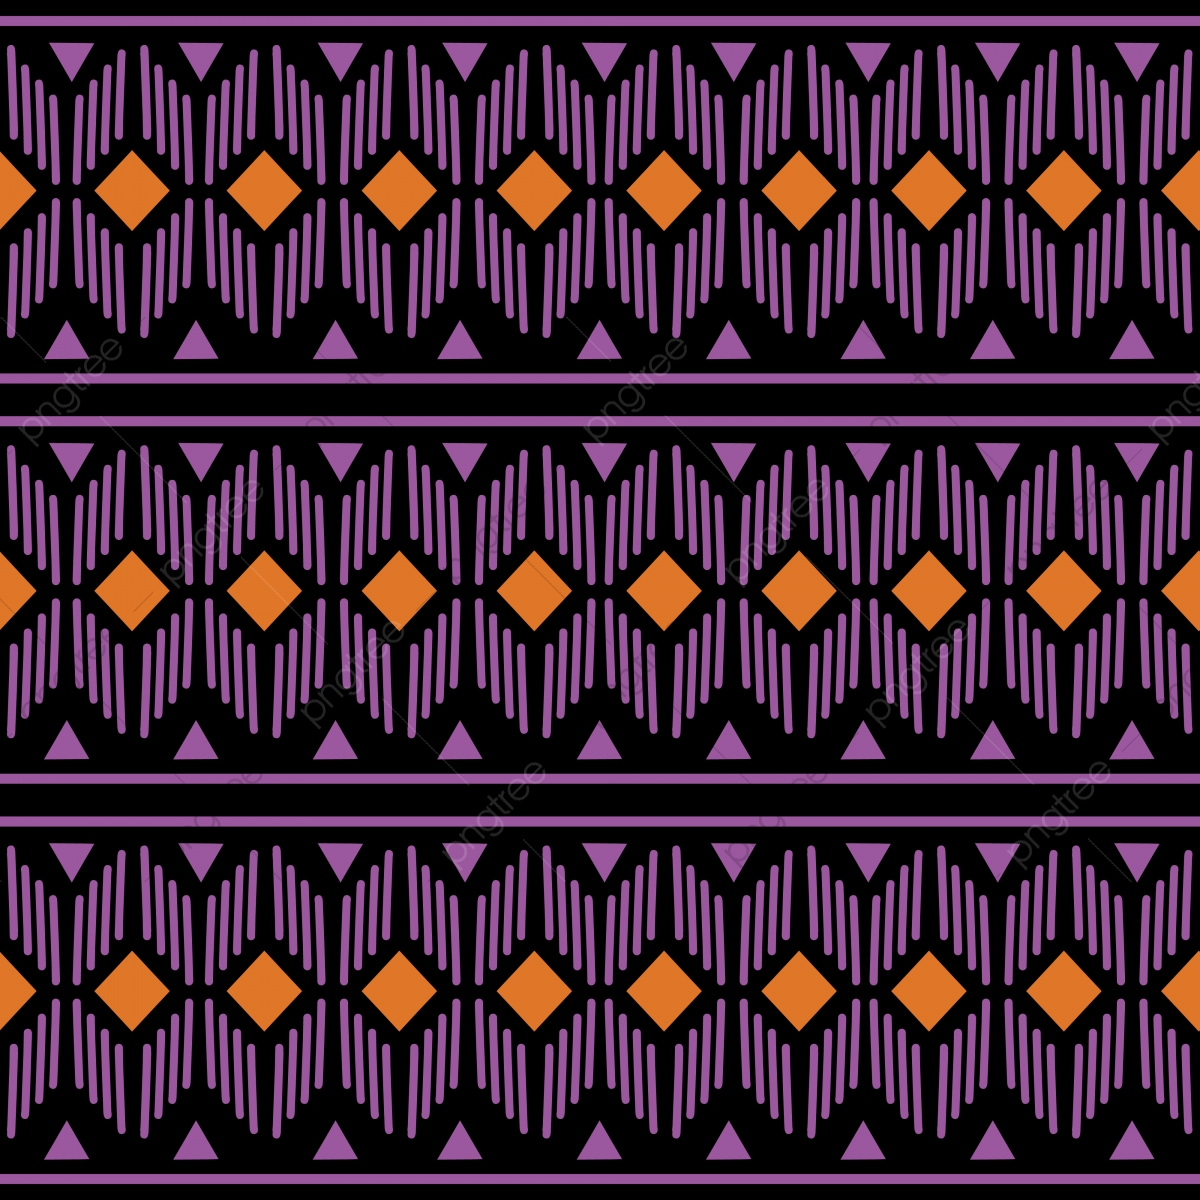 Geometric Hawaiian Ethnic Oriental Seamless Pattern Traditional Design For Background Carpet Wallpaper Clothing Wrapping Batik Fabric Vector Illustration Embroidery Style For Women Fashion Native Geometric Pattern Png And Vector With Transparent